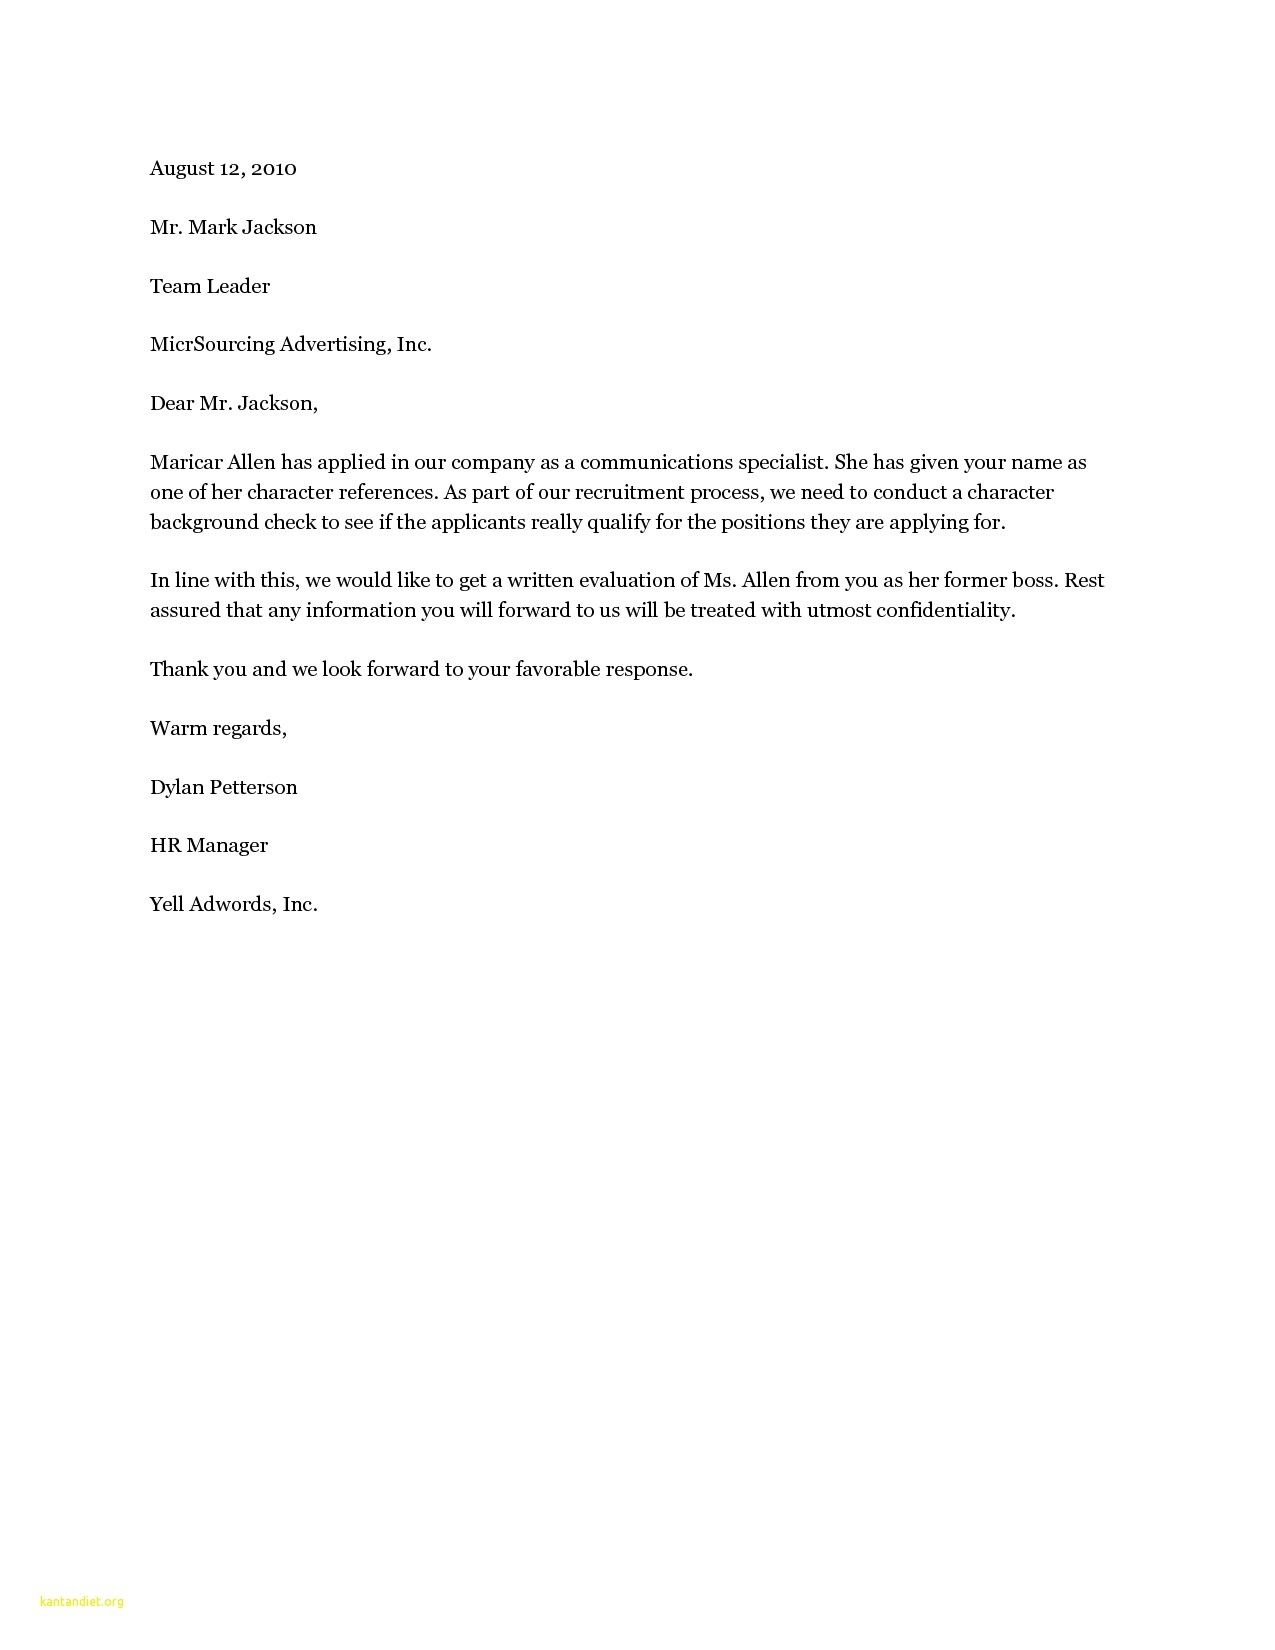 Basic Recommendation Letter Template - Inspirational Basic Cover Letter Template